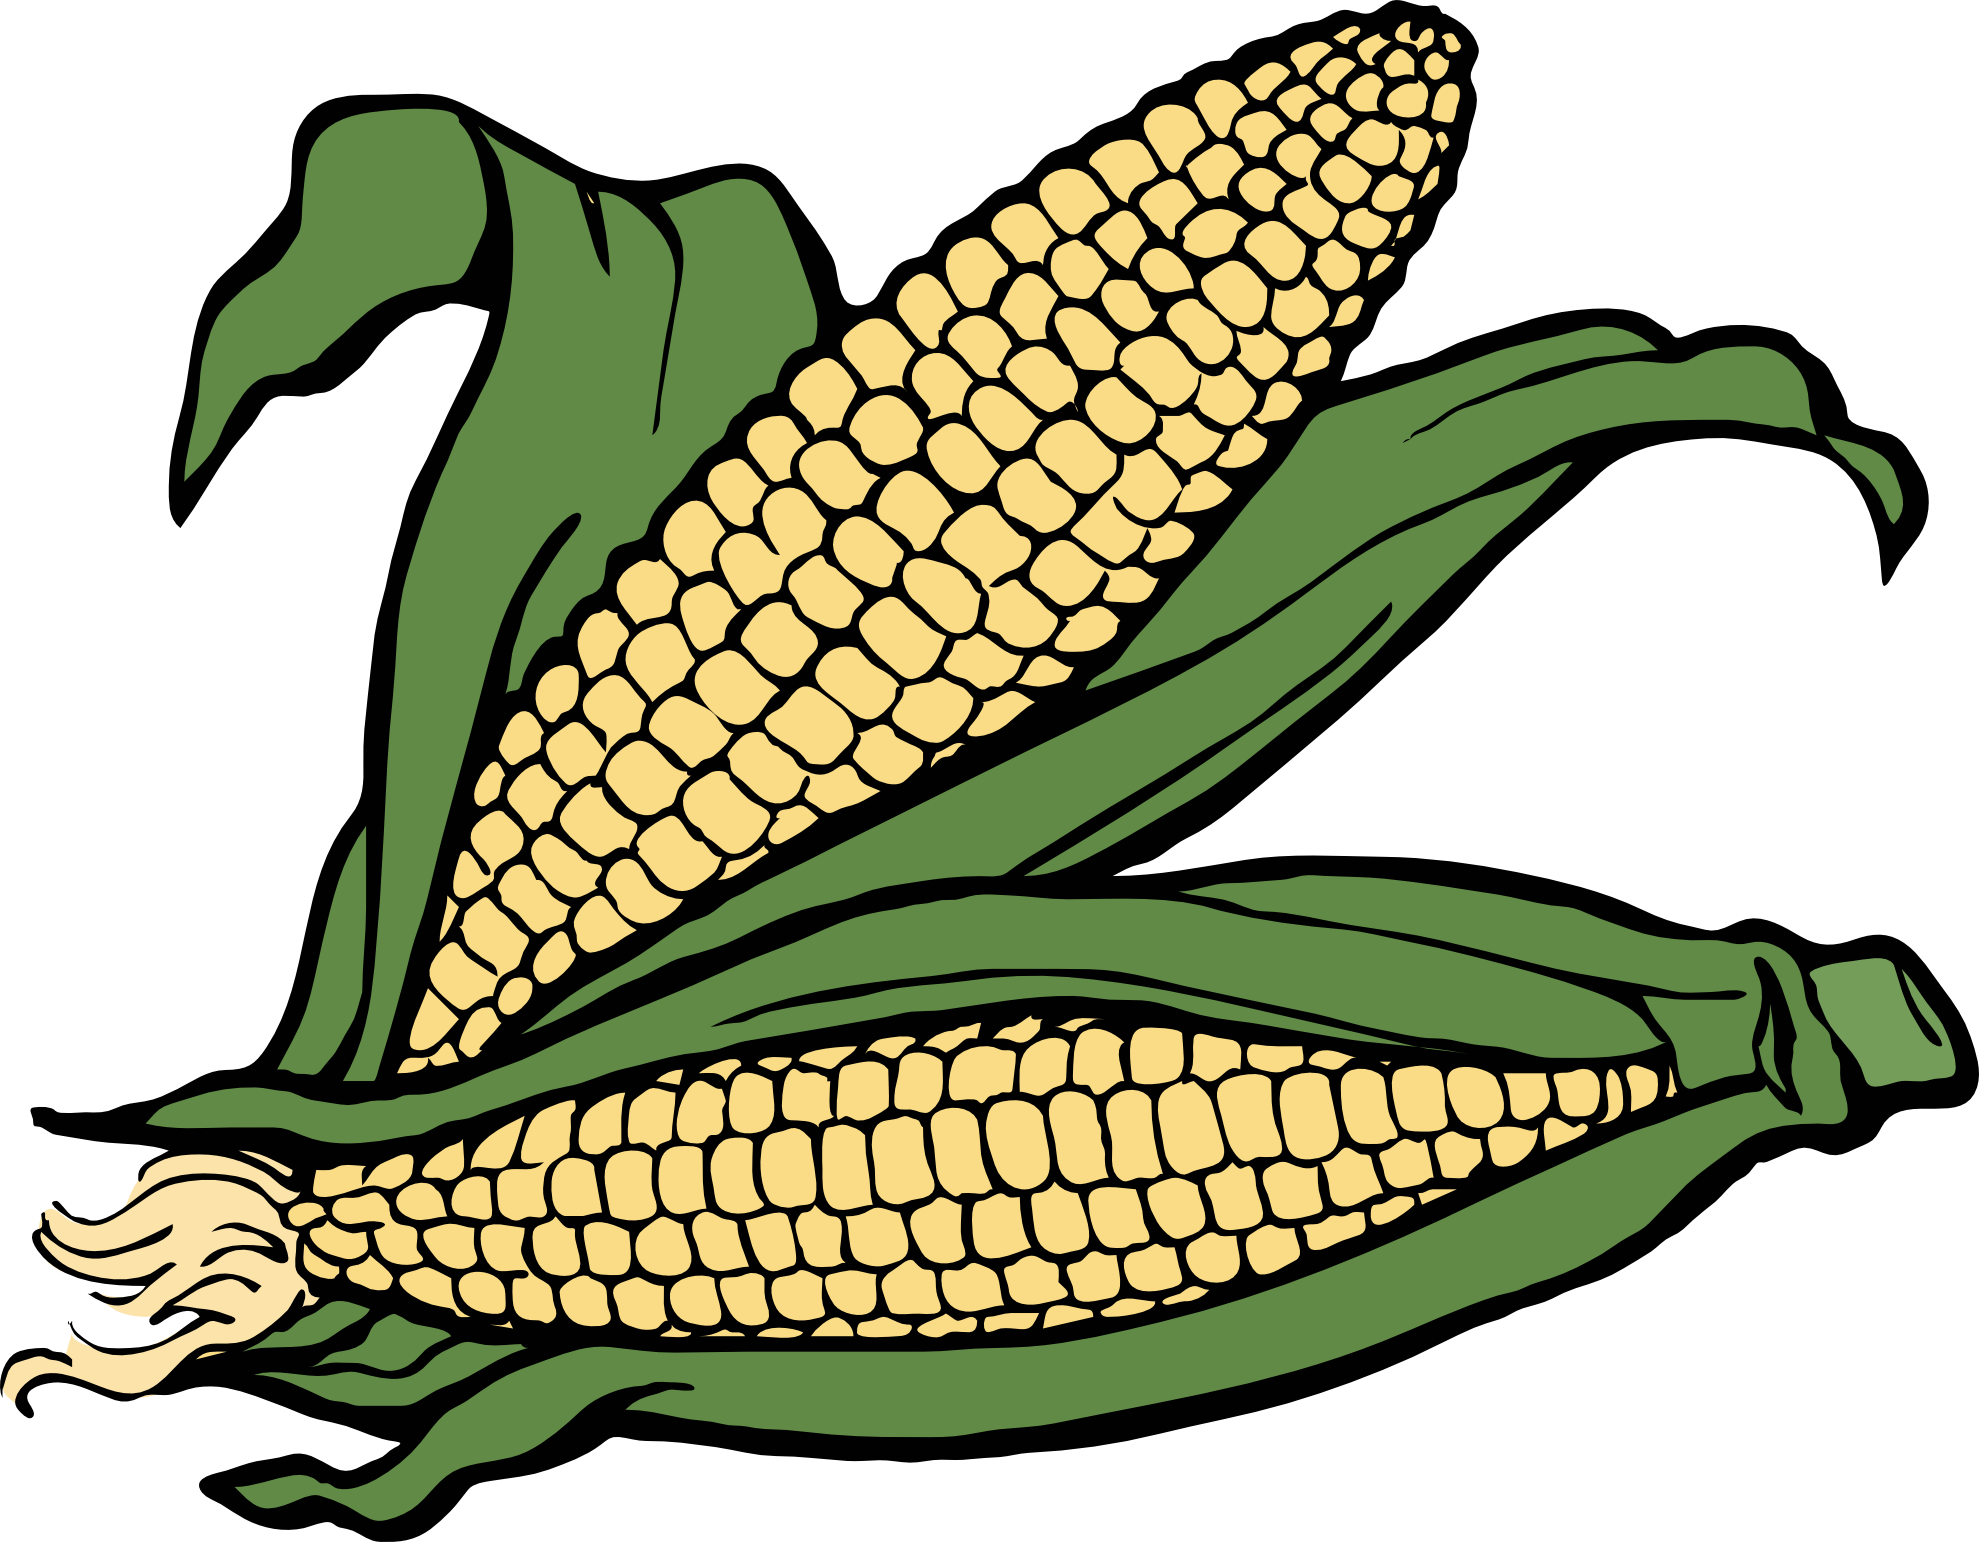 Vegetables clipart corn. Coloring book panda free